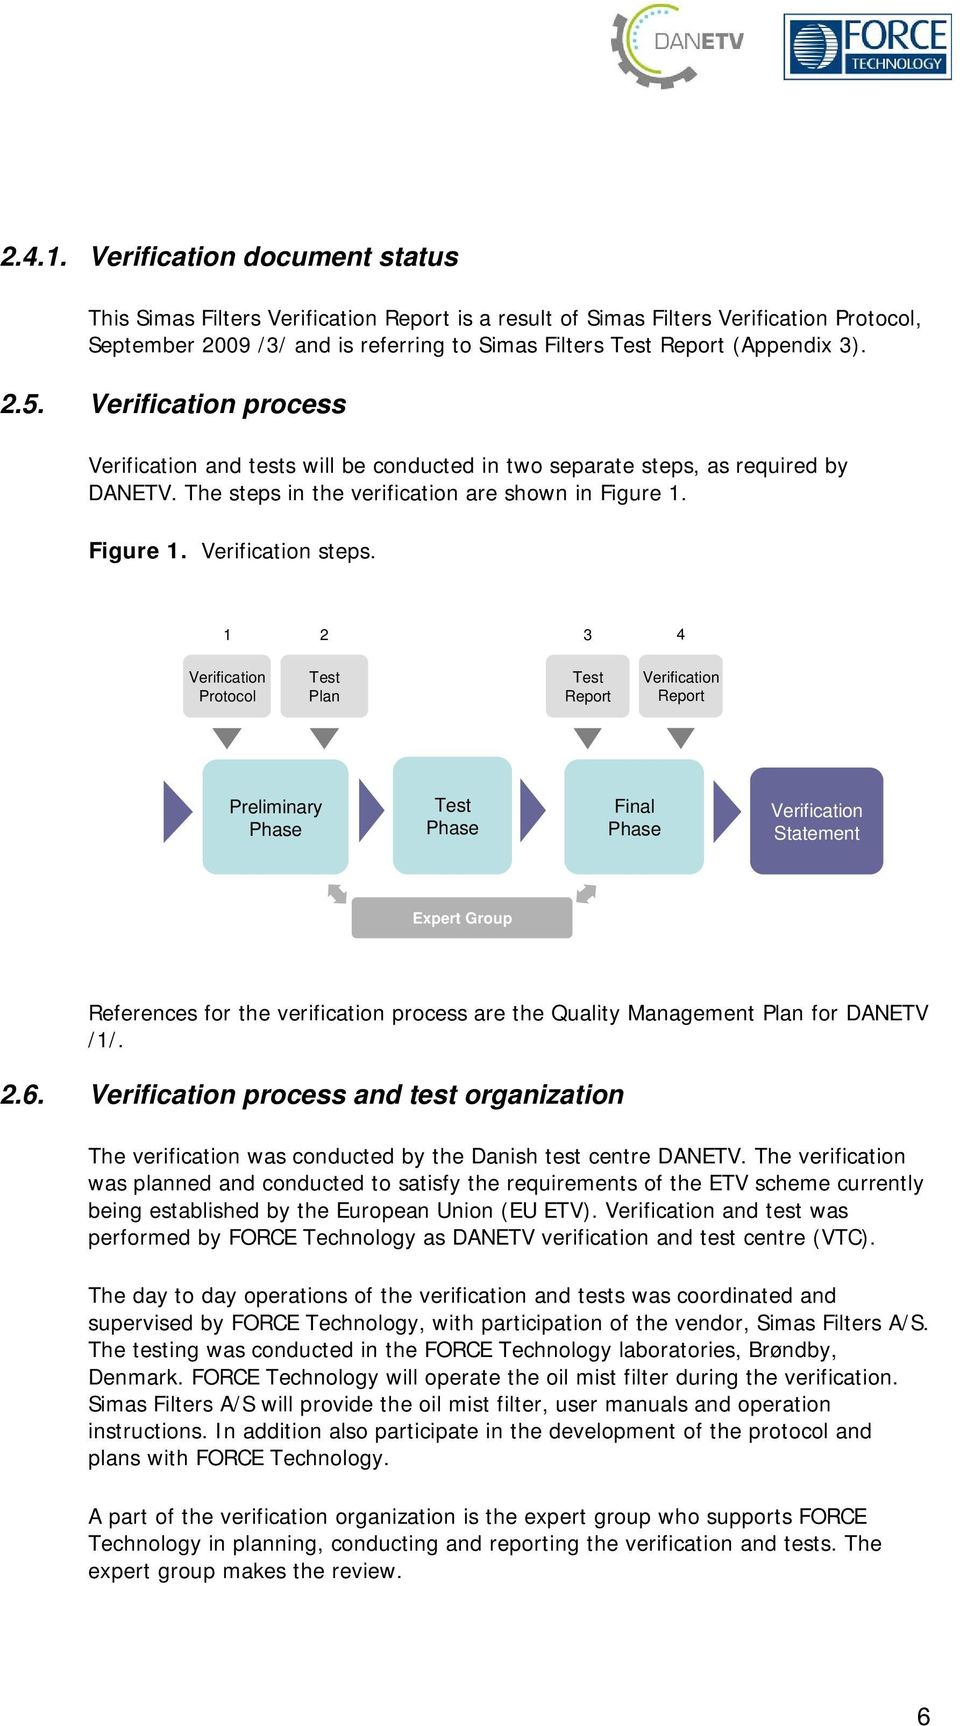 2.5. Verification process Verification and tests will be conducted in two separate steps, as required by DANETV. The steps in the verification are shown in Figure 1. Figure 1. Verification steps.